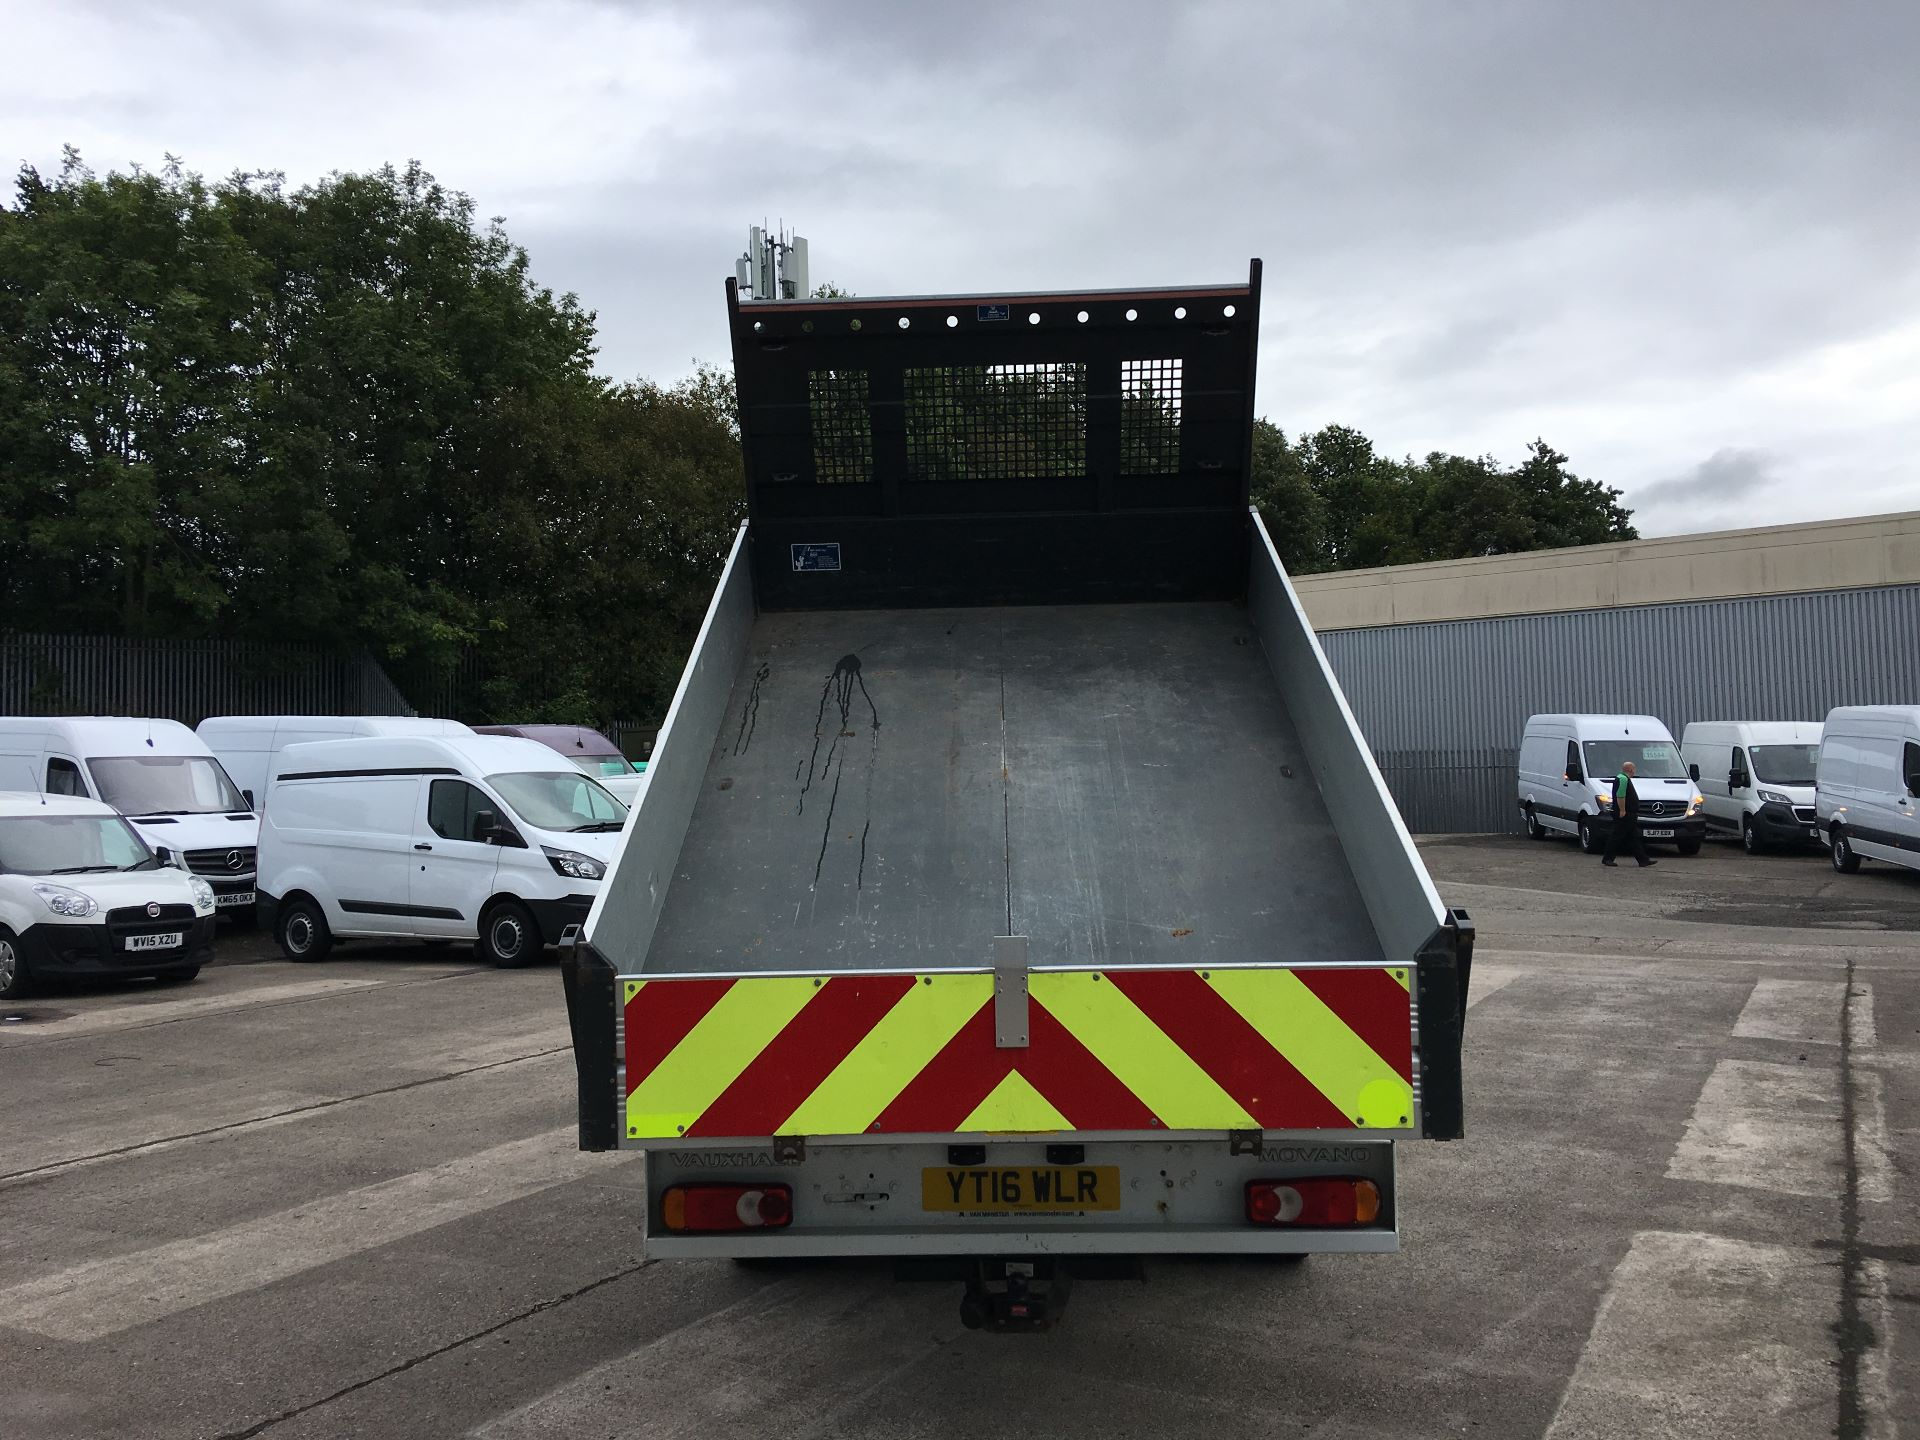 2016 Vauxhall Movano 35 L3 DIESEL RWD 2.3 CDTI 125PS D/CAB TIPPER EURO 5 (YT16WLR) Image 16